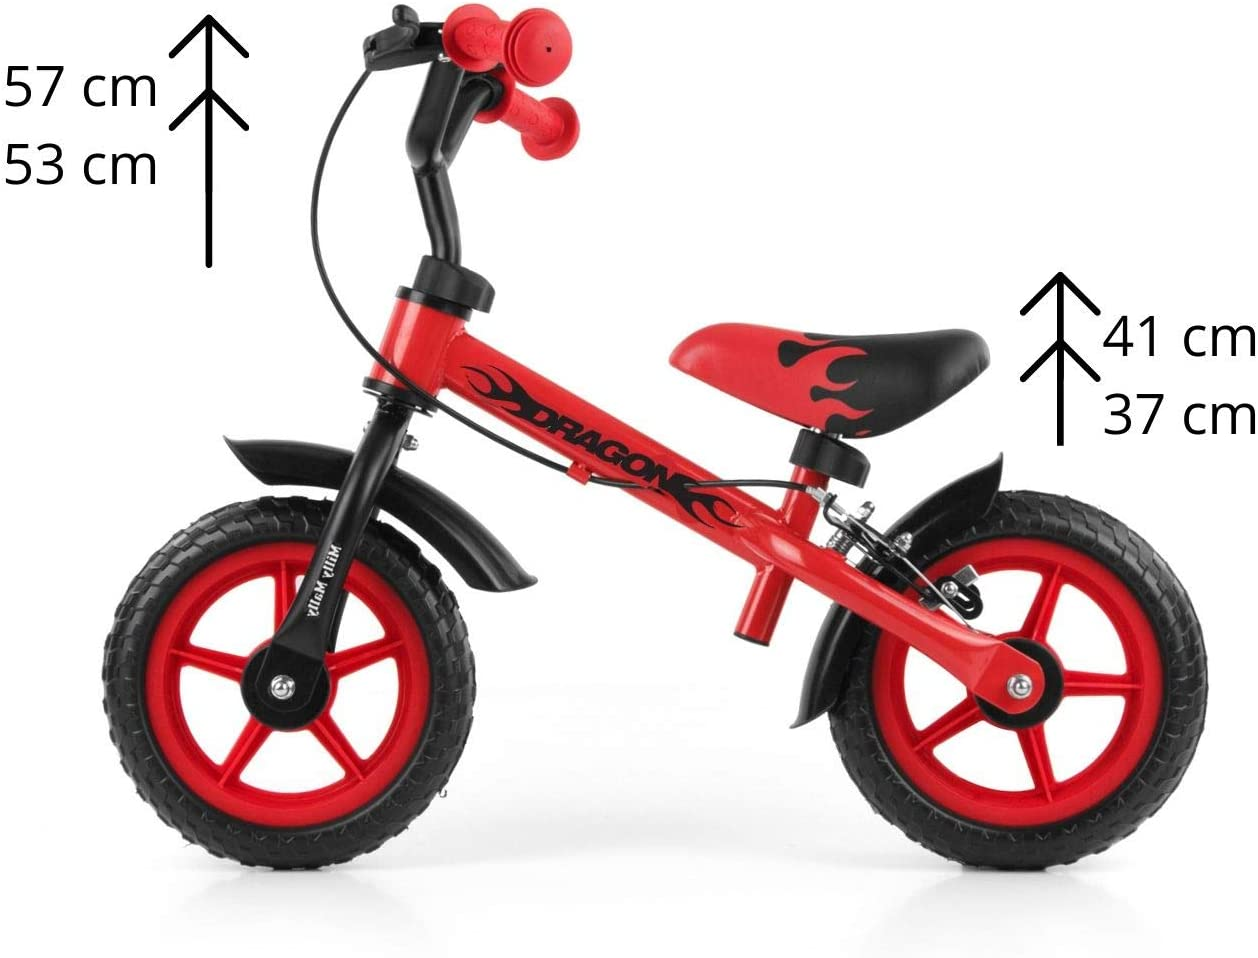 Milly Mally Dragon Braked Balance Bike: Amazon.es: Juguetes y juegos